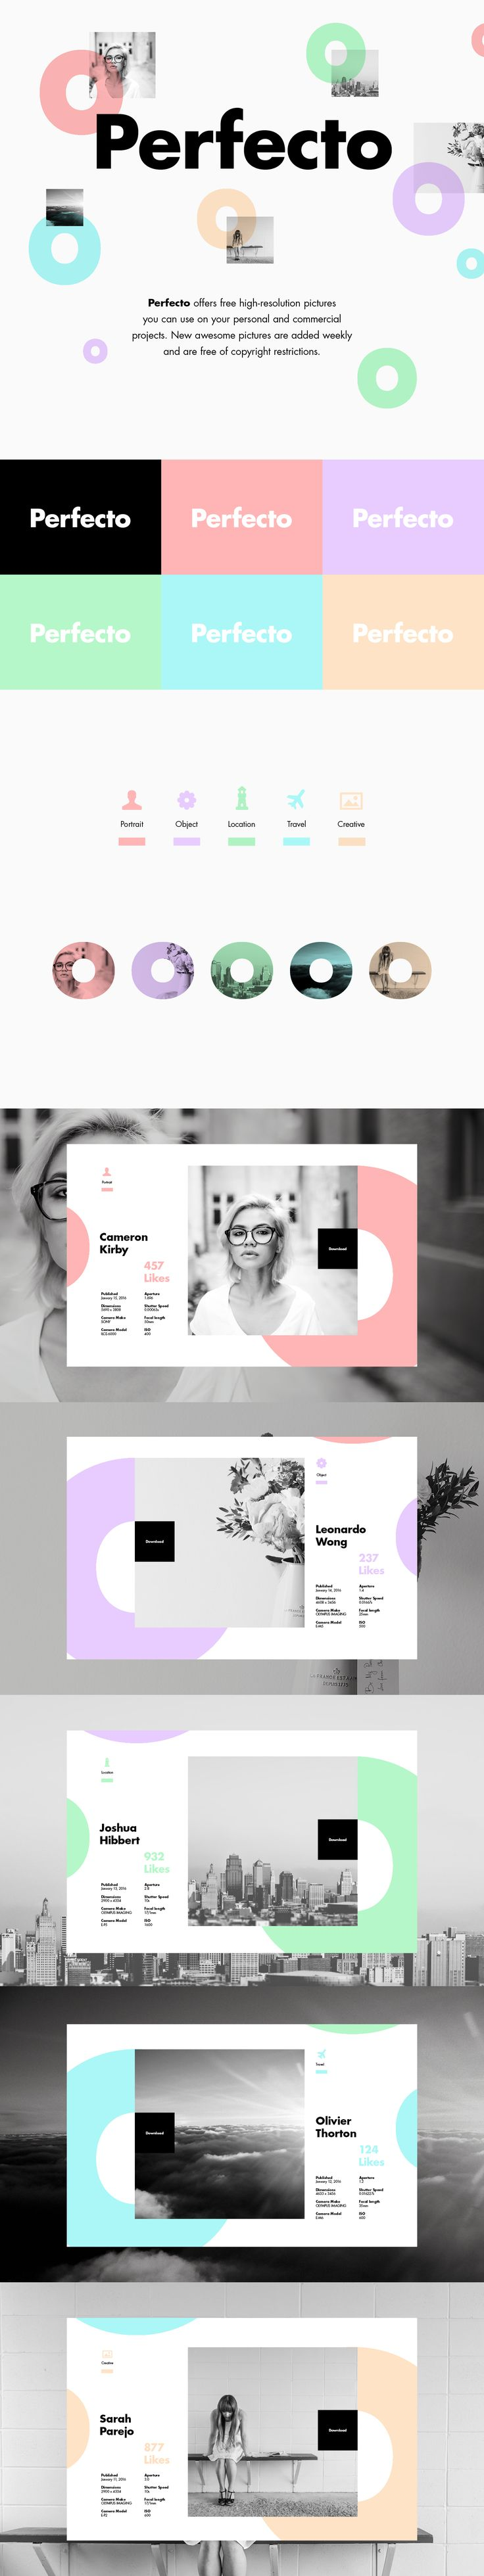 First layout for Perfecto Stock Imagery landing page. Showing some of the stock imagery category.I wanted to design a layout which would be visually attractive to the viewer and also compliment the photography (Photographer).The idea is that the image…